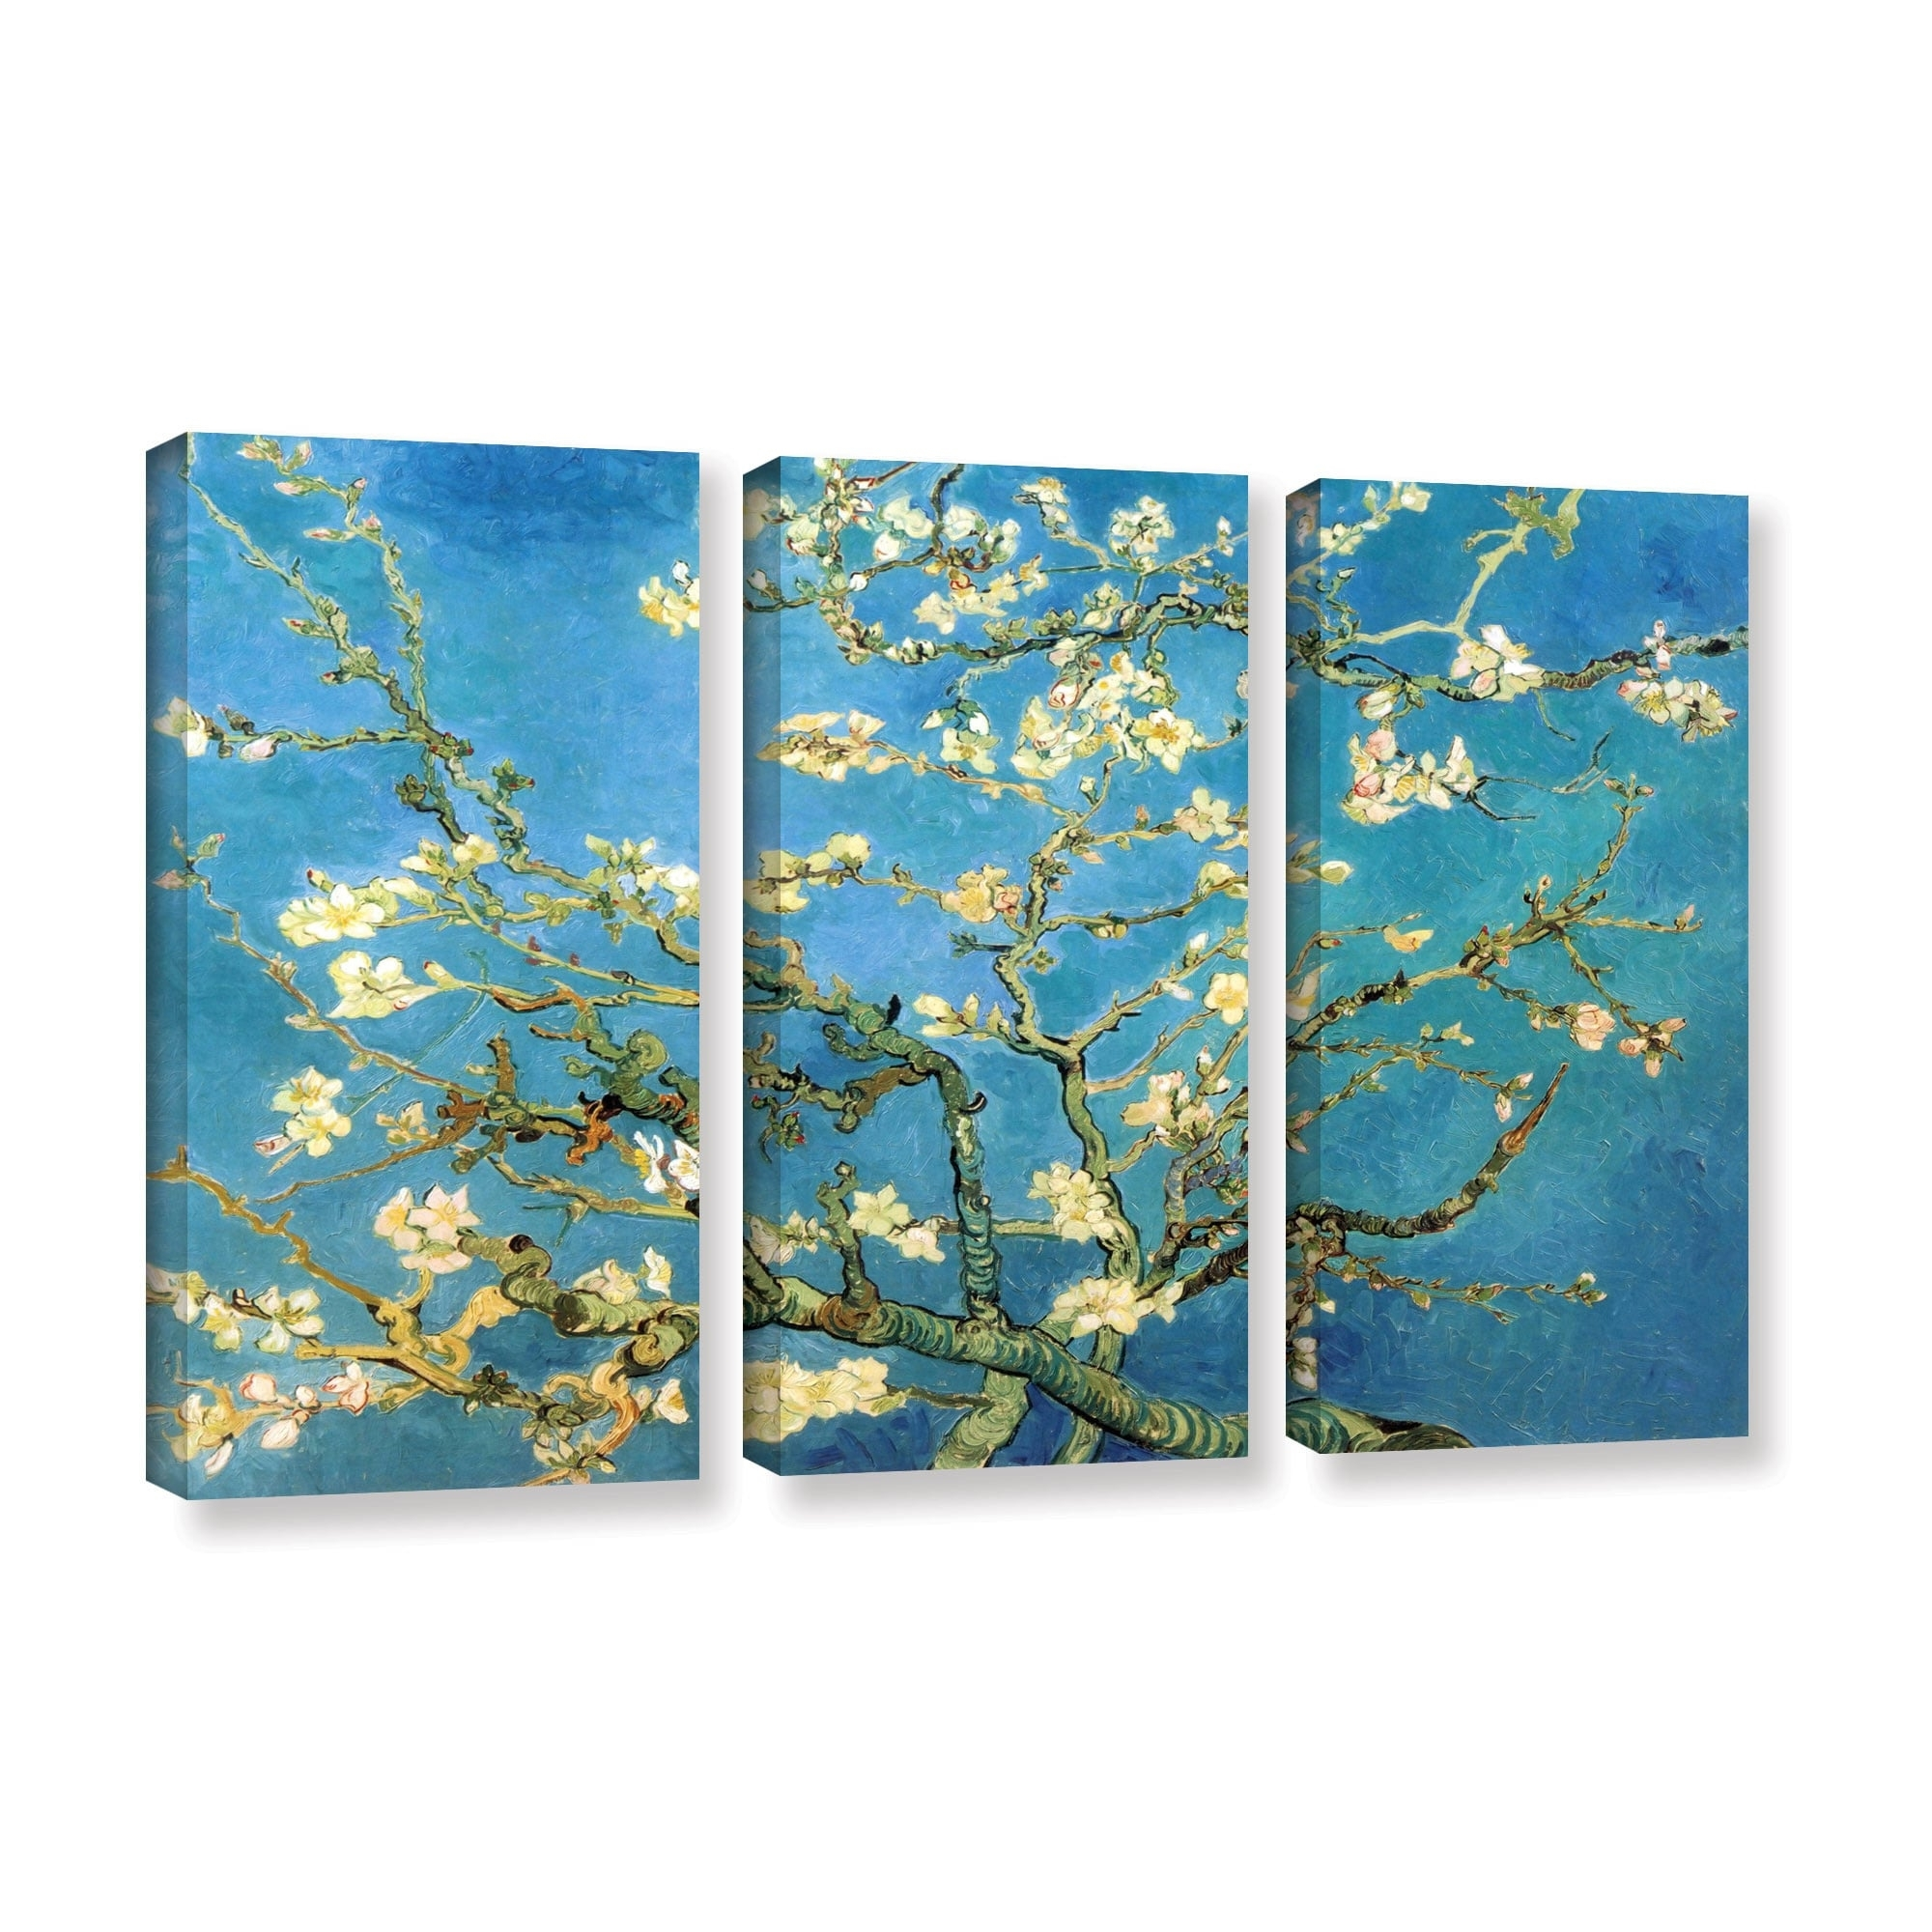 Vincent Van Gogh '3 Piece Almond Blossom' Gallery Wrapped Canvas For 2017 Vincent Van Gogh Multi Piece Wall Art (View 4 of 20)